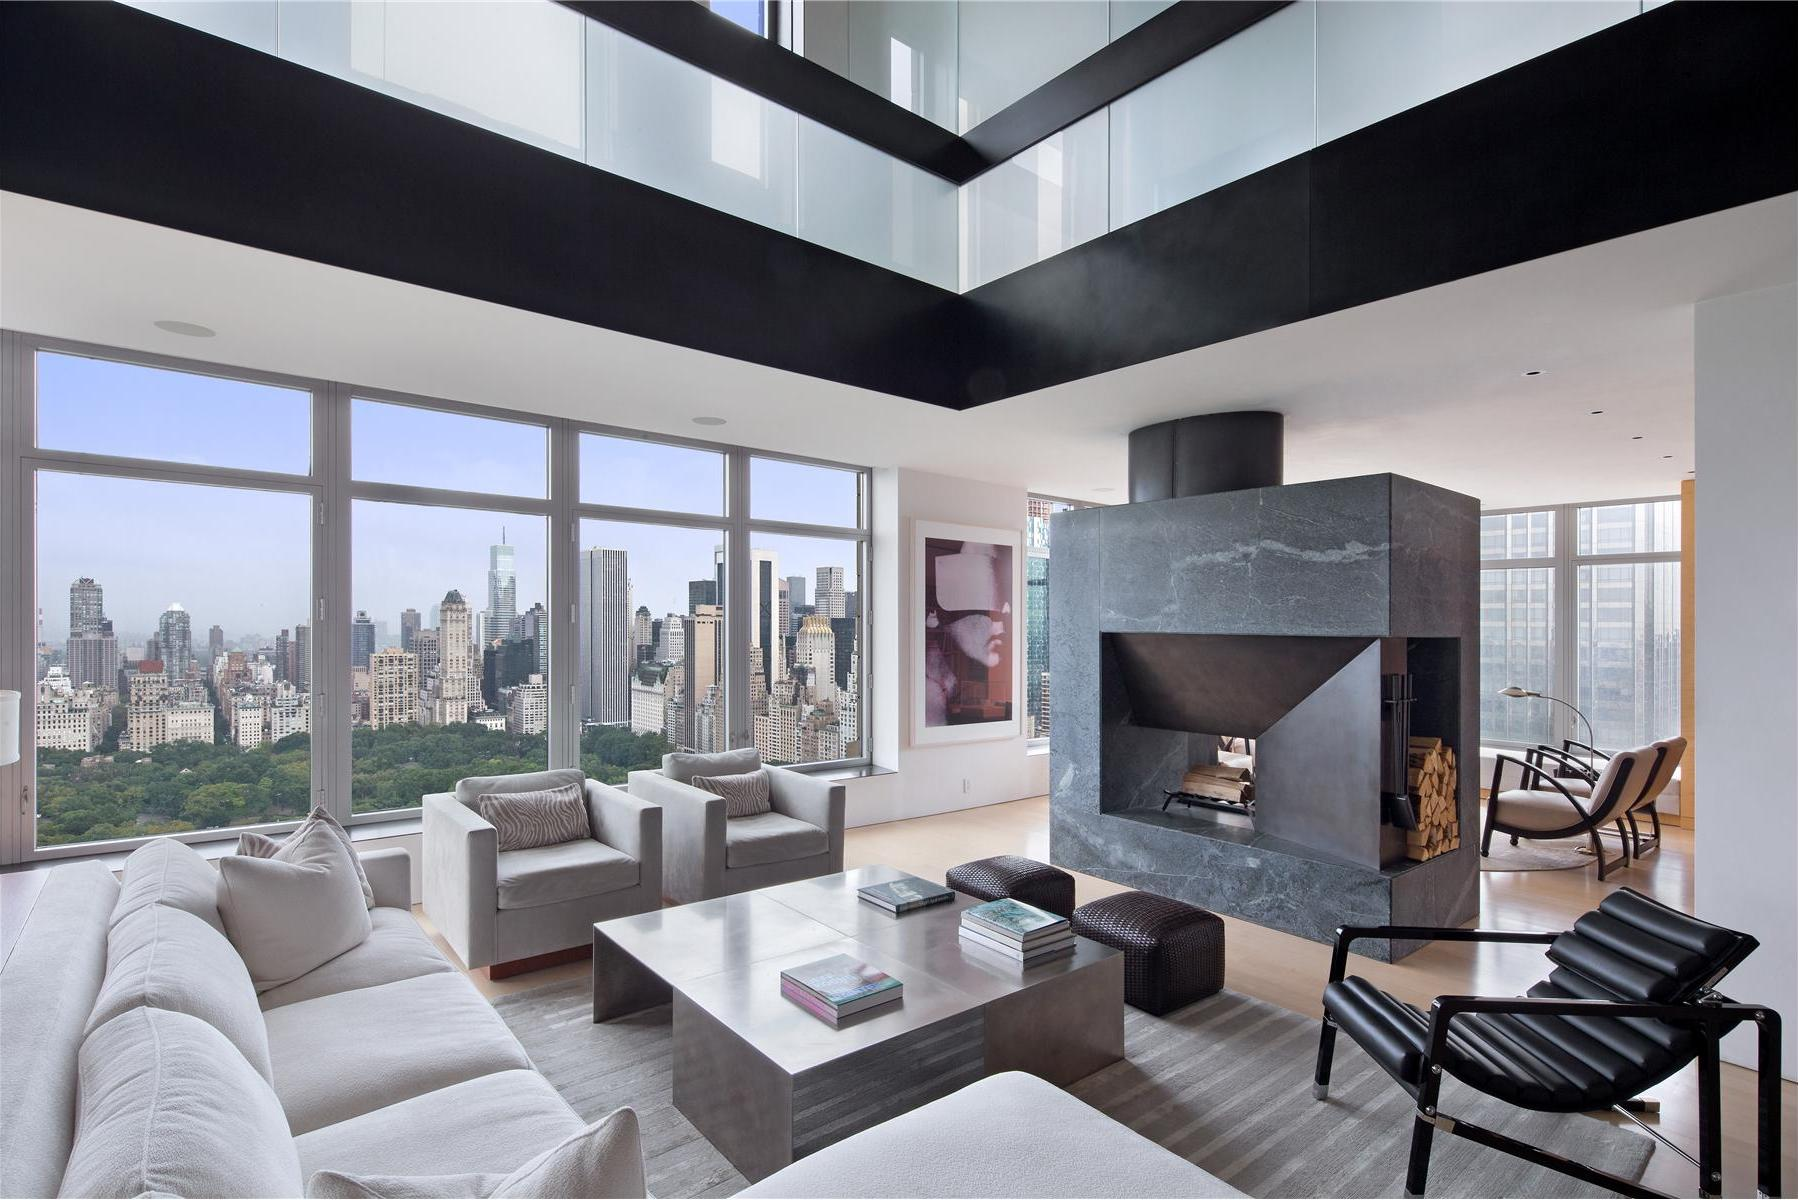 Lavish park laurel penthouse for sale 26 5 million for Penthouses for sale in manhattan